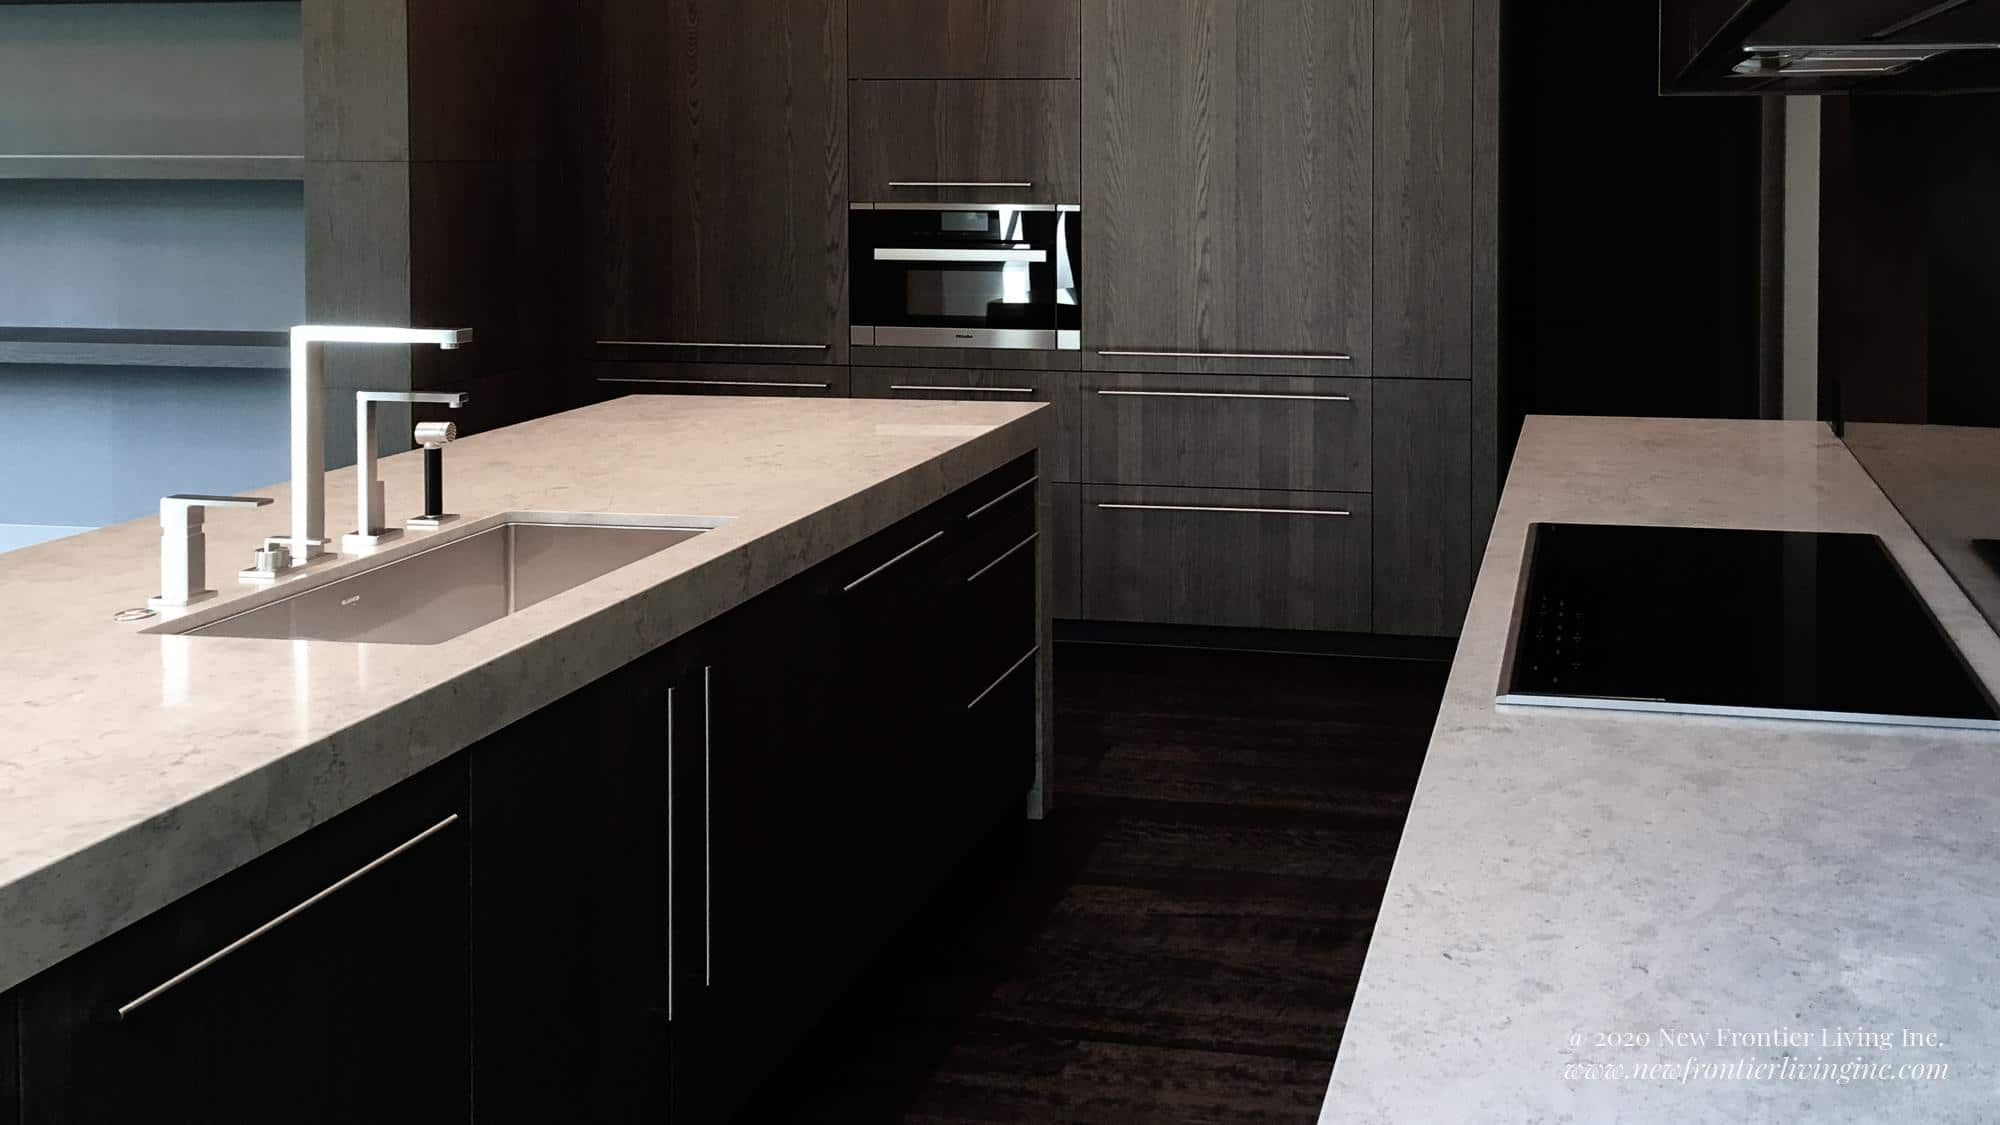 White countertop kitchen island with sink to the left and wall countertop with cooktop to the right